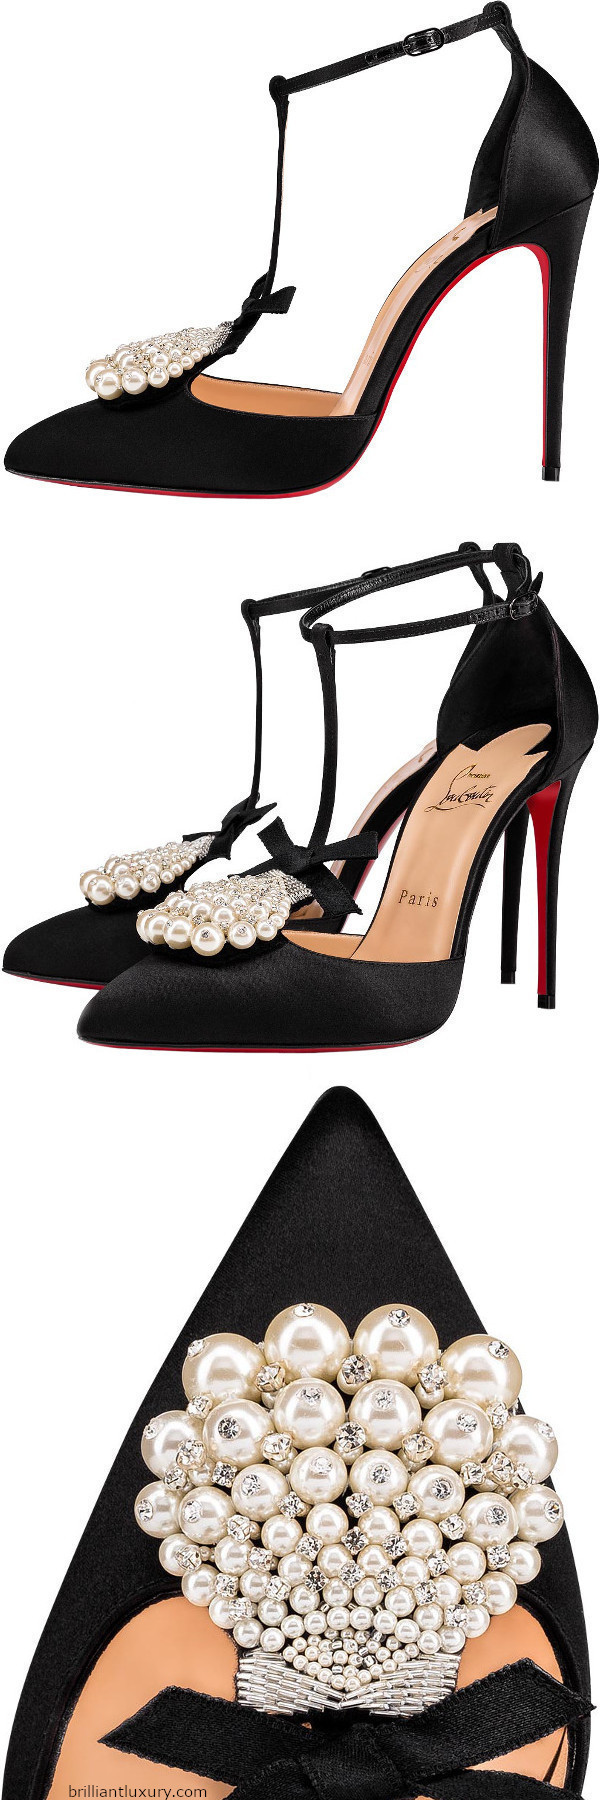 Brilliant Luxury│Christian Louboutin Goyetta black bejeweled pumps